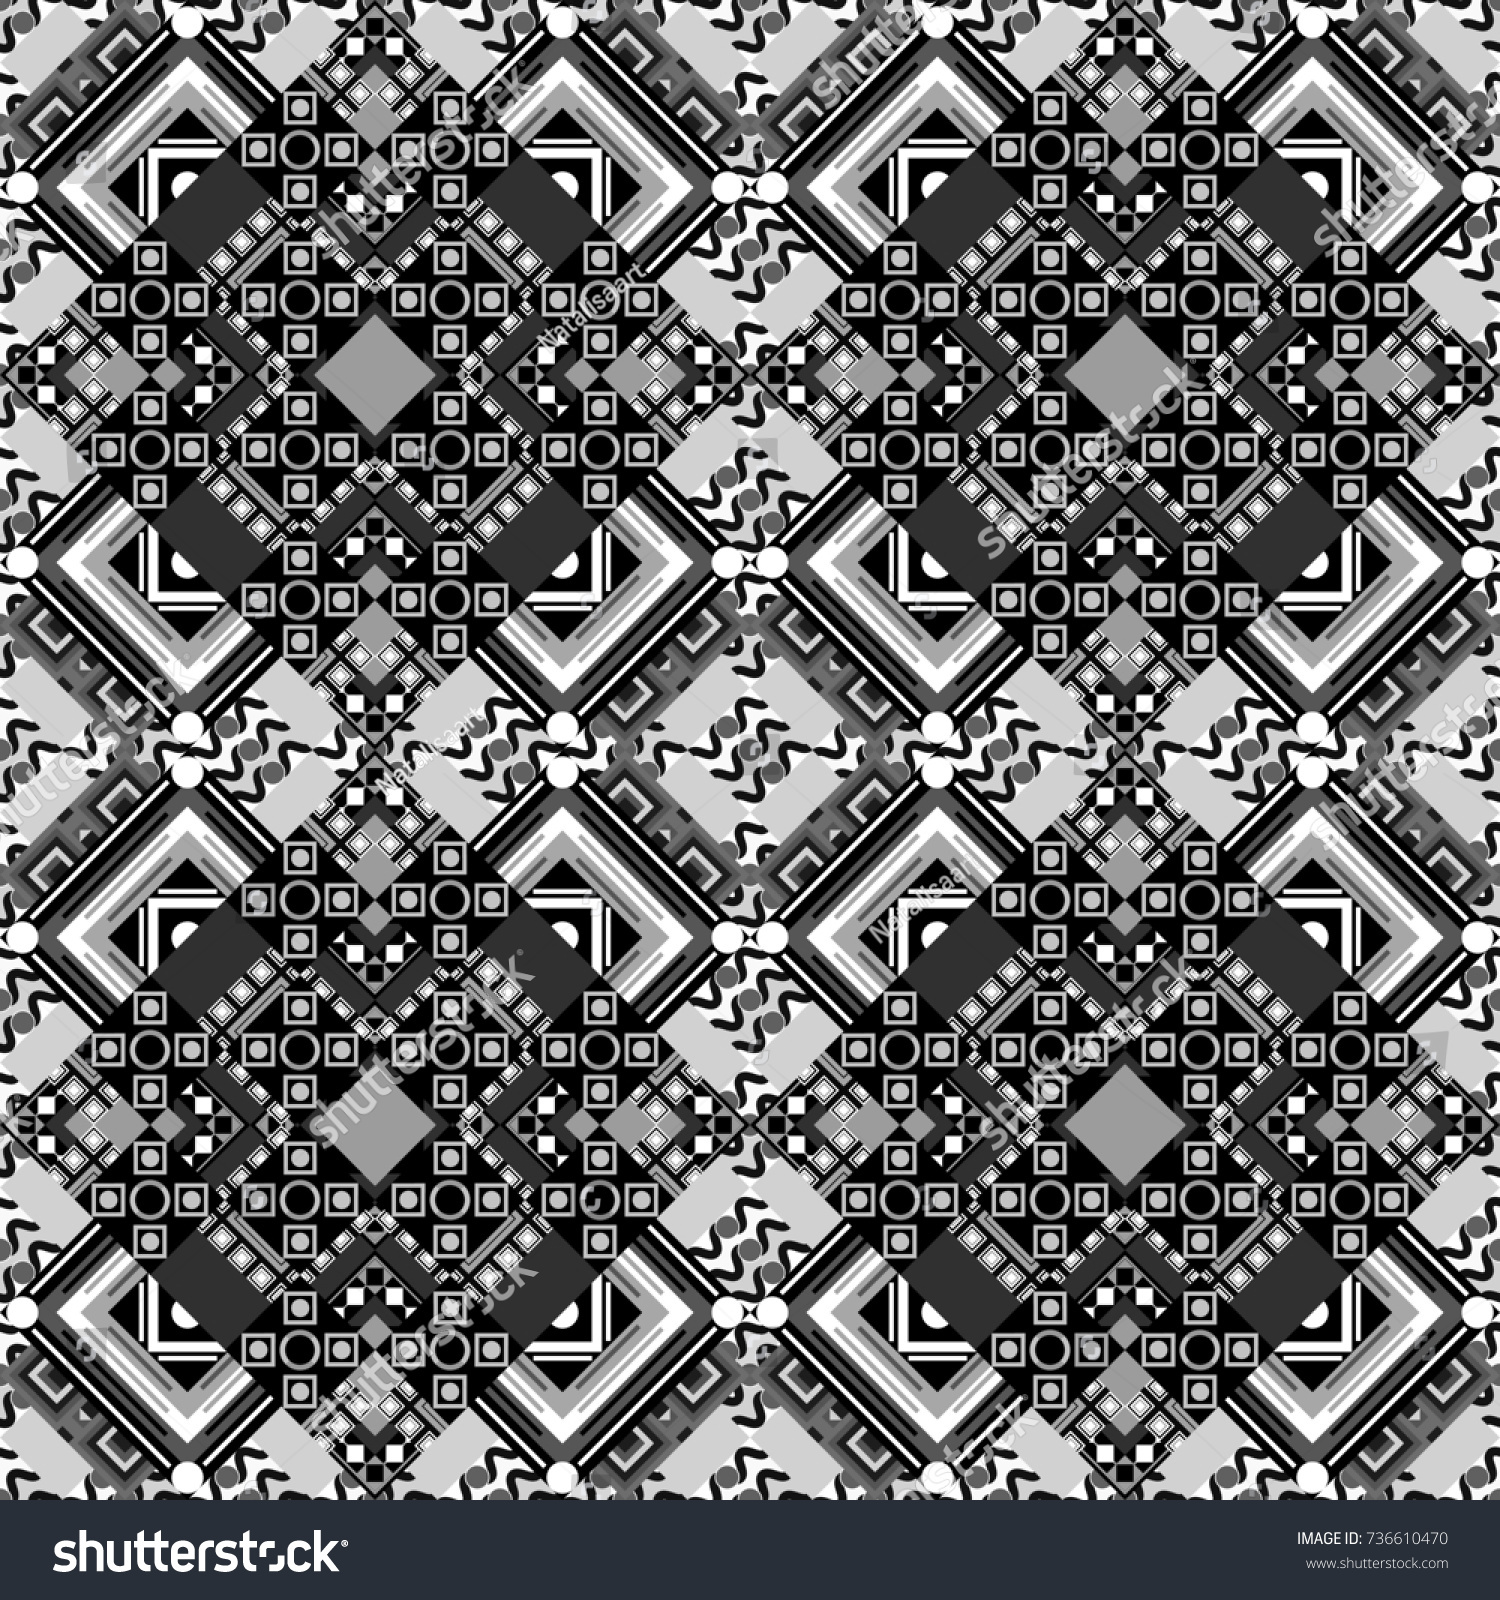 Seamless geometric pattern of black white and gray tiles